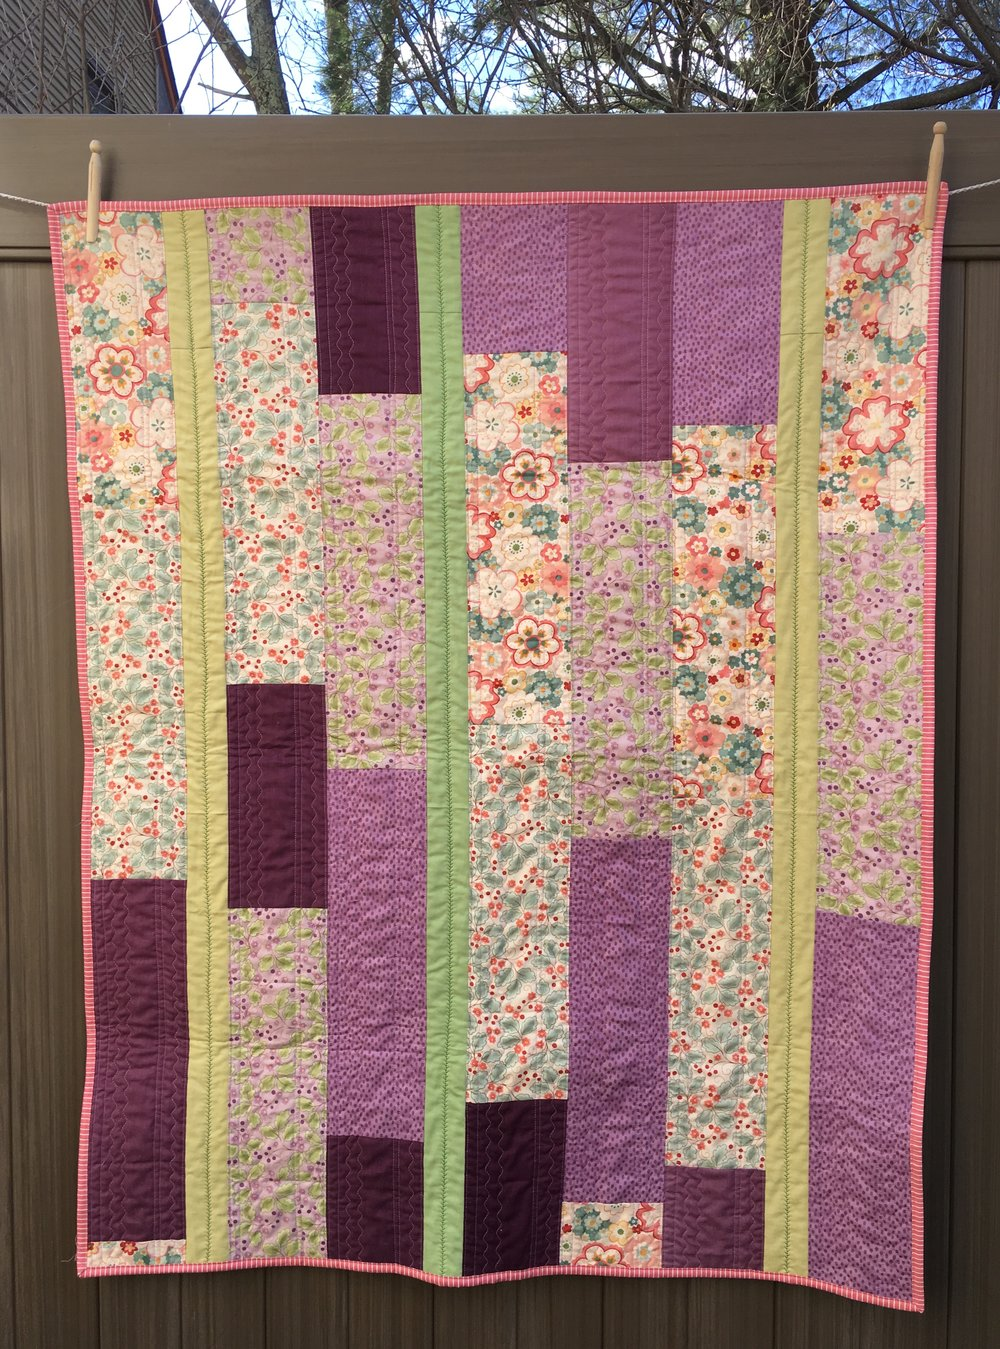 Lavender Floral Strip Quilt Variation, approx 42 x 50 inches